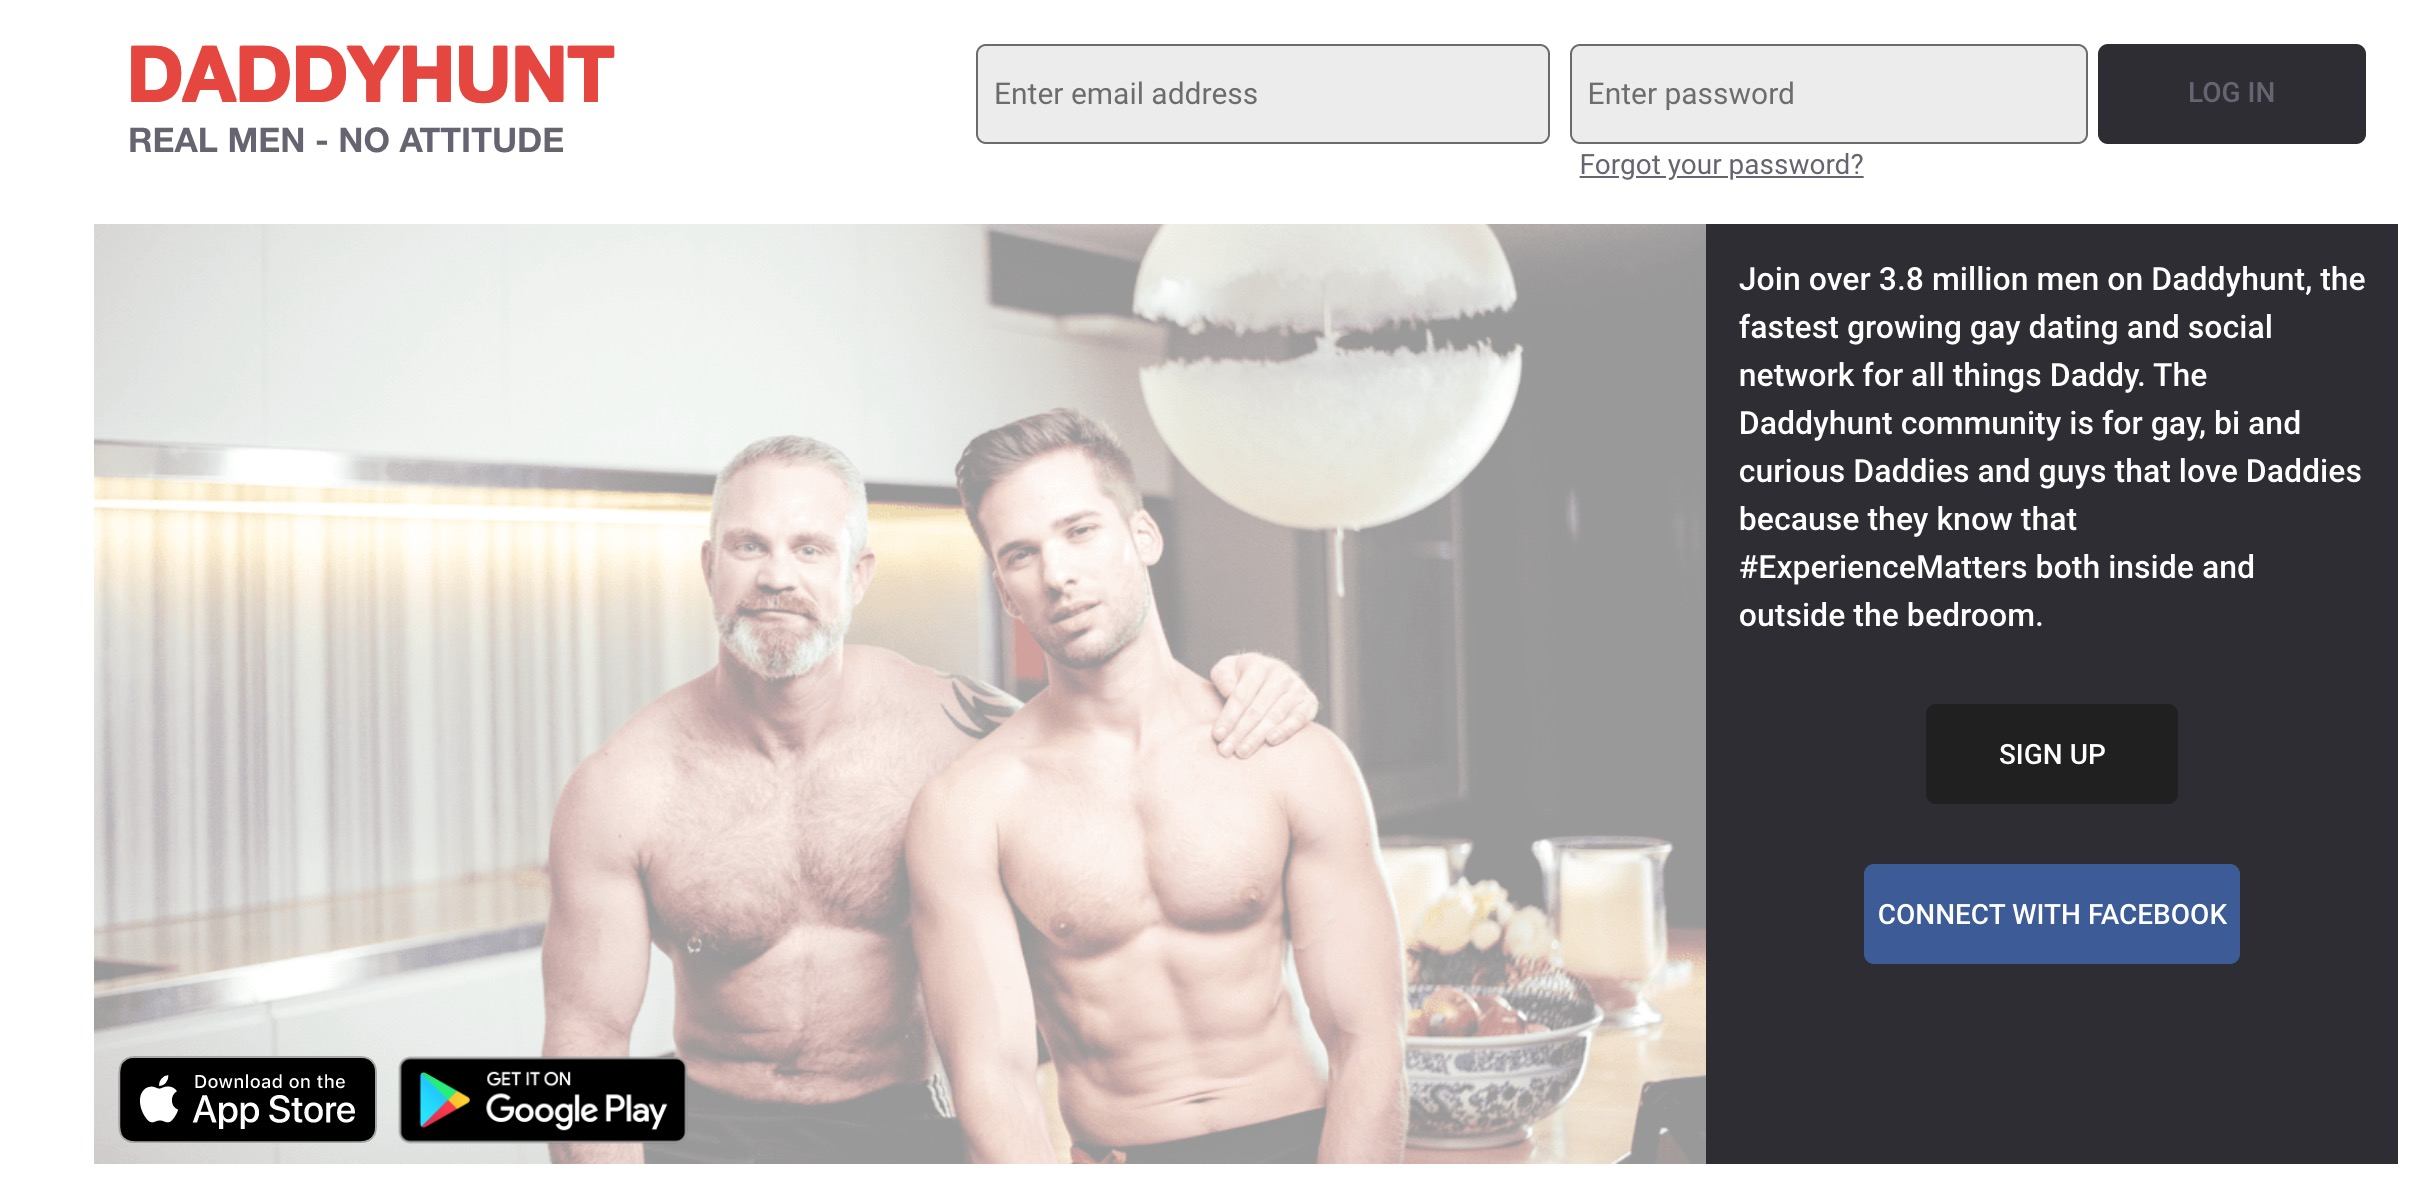 DaddyHunt main page